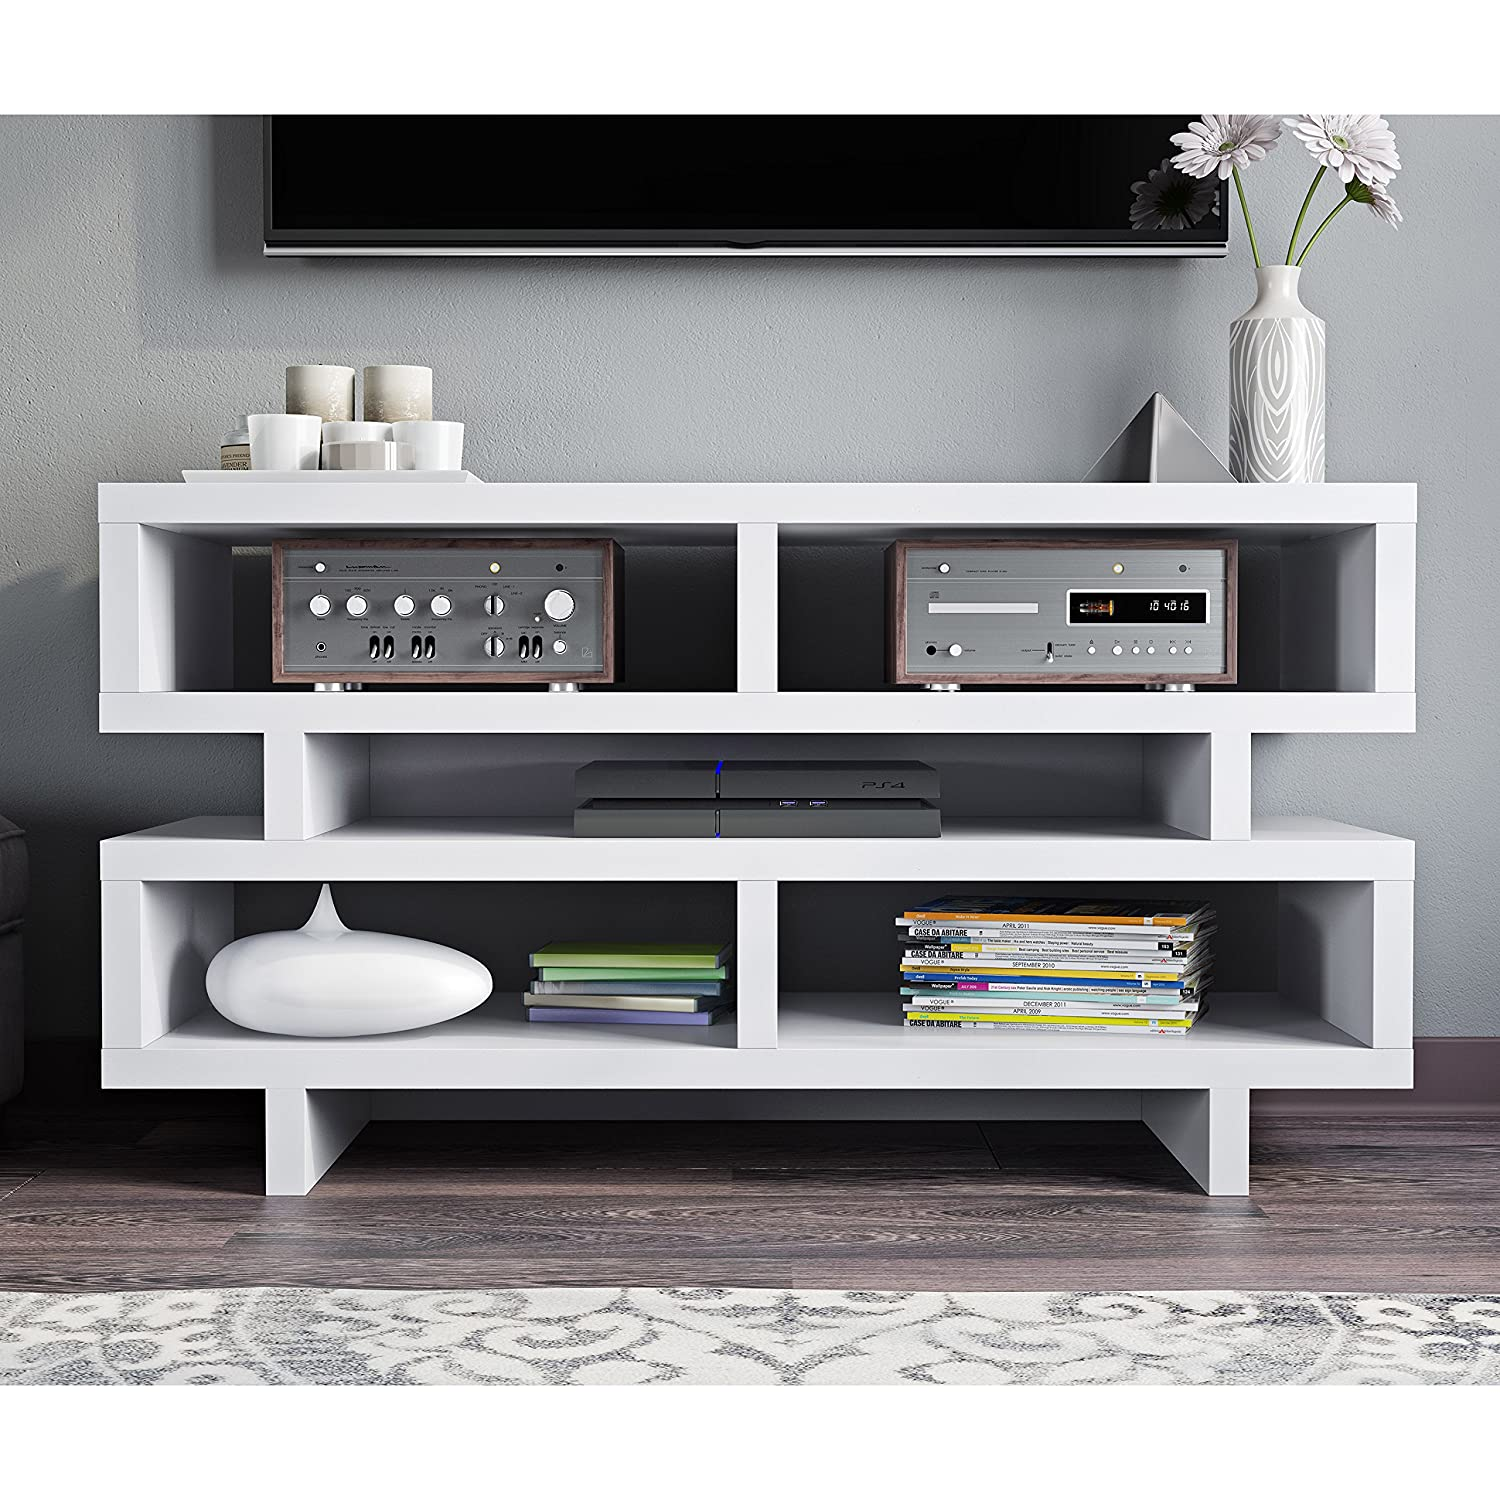 Amazon com white modern geometric multi storage media compartment shelf tv stand console table kitchen dining